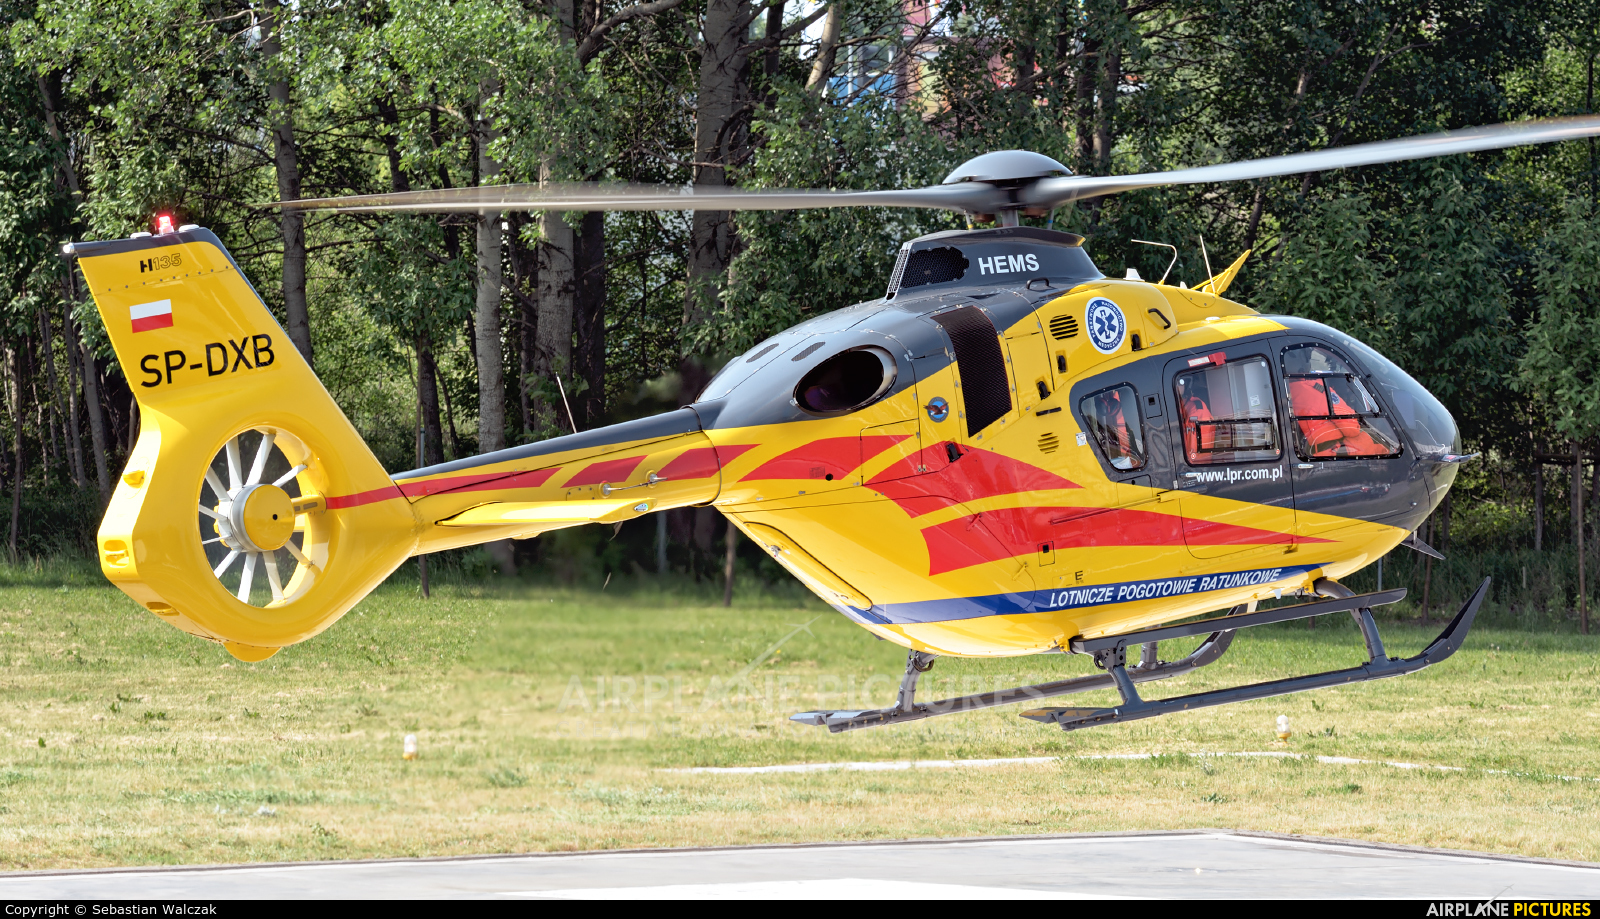 Polish Medical Air Rescue - Lotnicze Pogotowie Ratunkowe SP-DXB aircraft at Off Airport - Poland